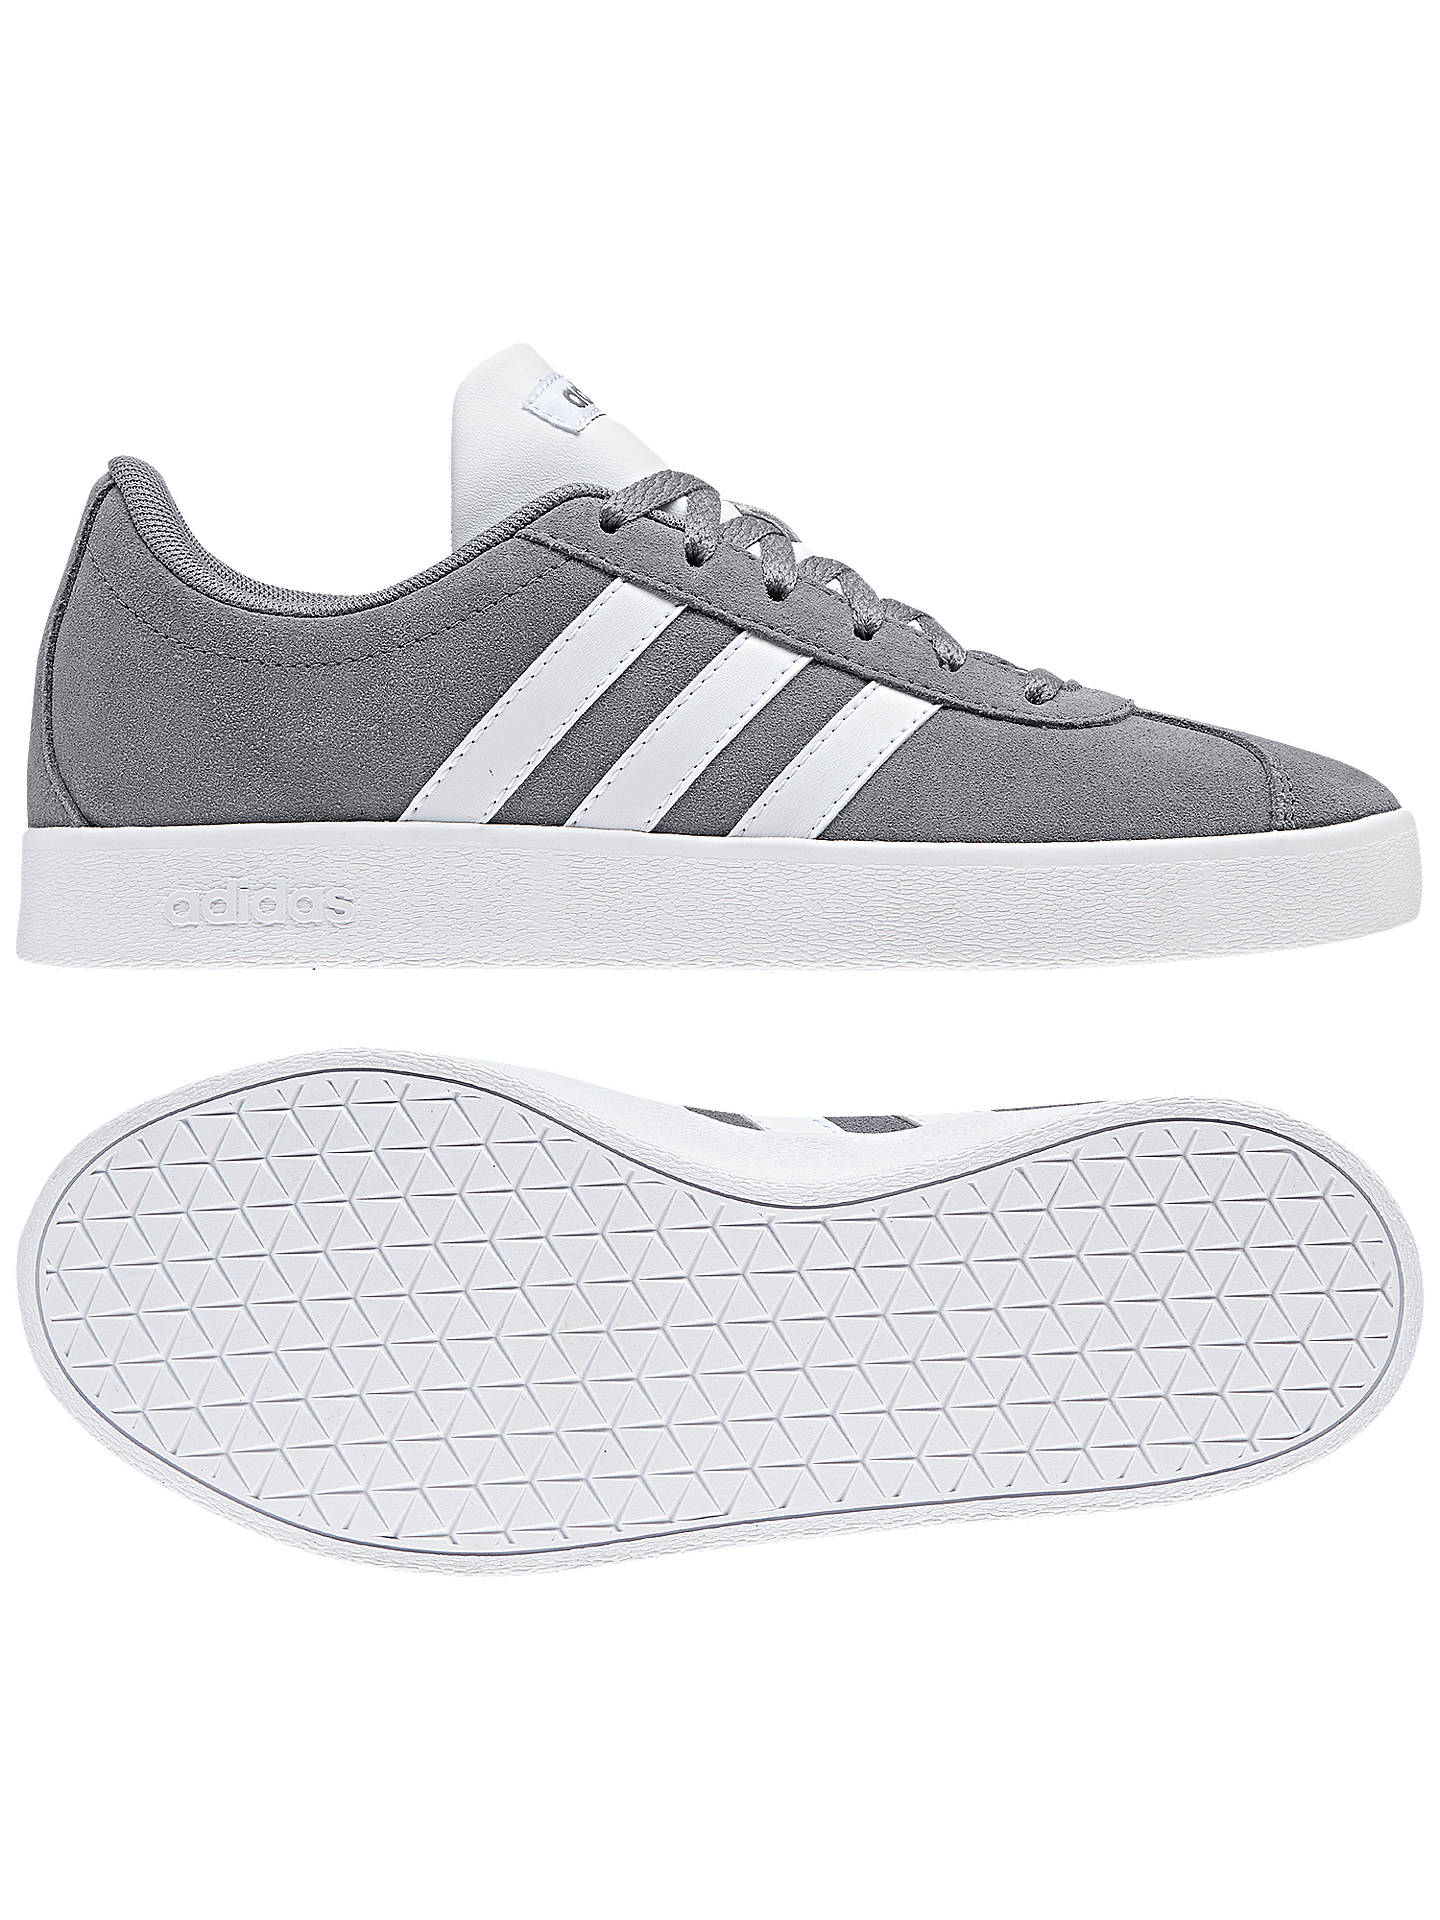 Buy adidas Children's VL Court 2.0 Trainers, Grey, 10 Jnr Online at johnlewis.com